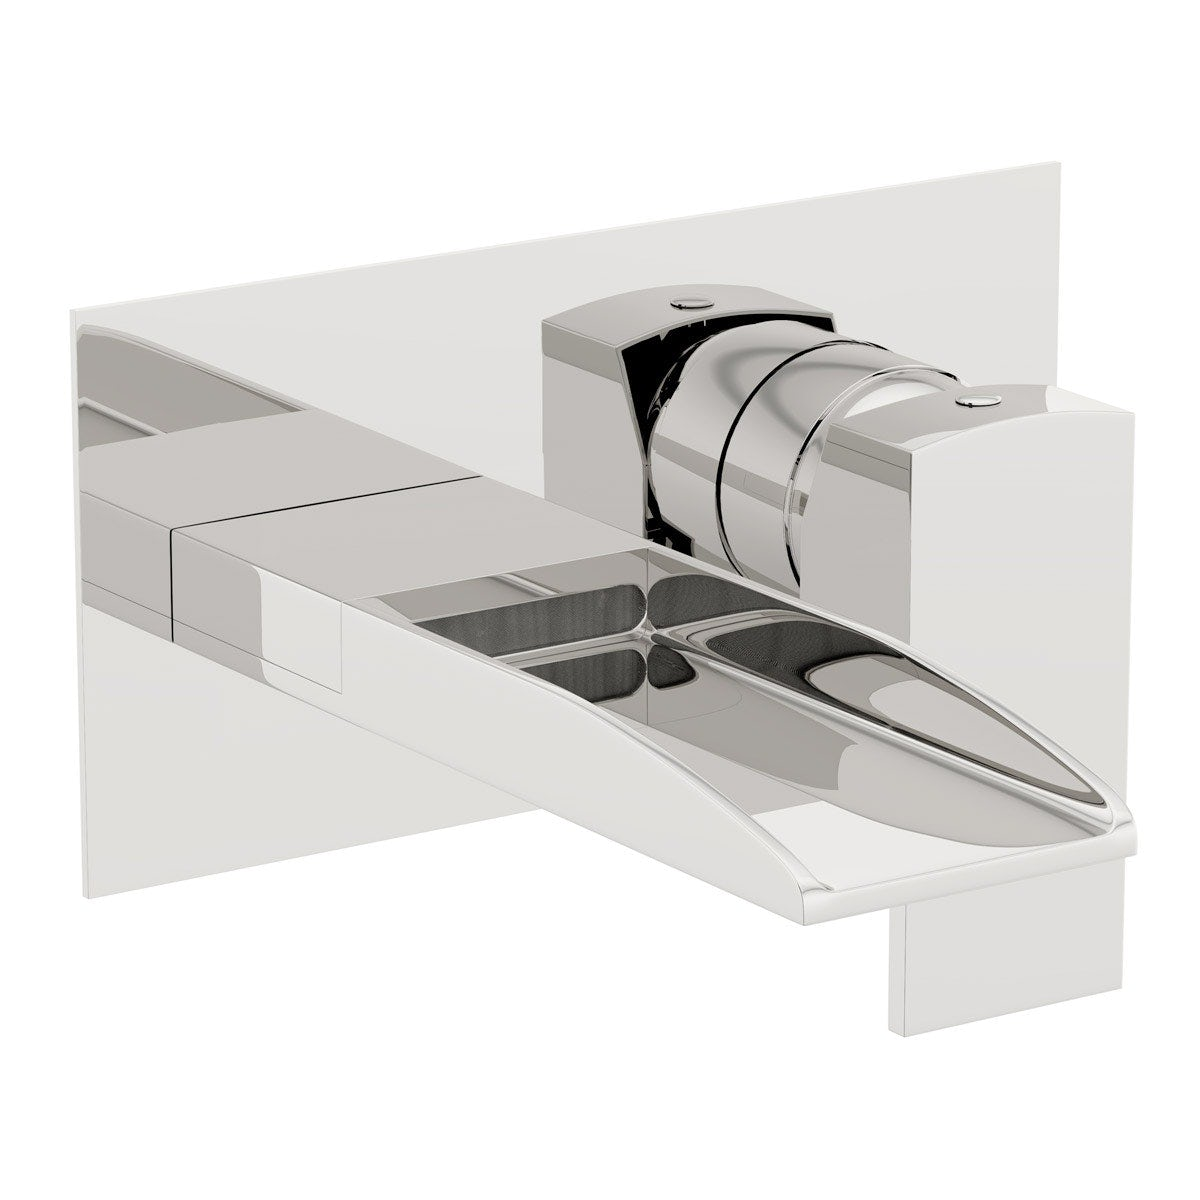 Mode Cooper wall mounted waterfall bath mixer tap